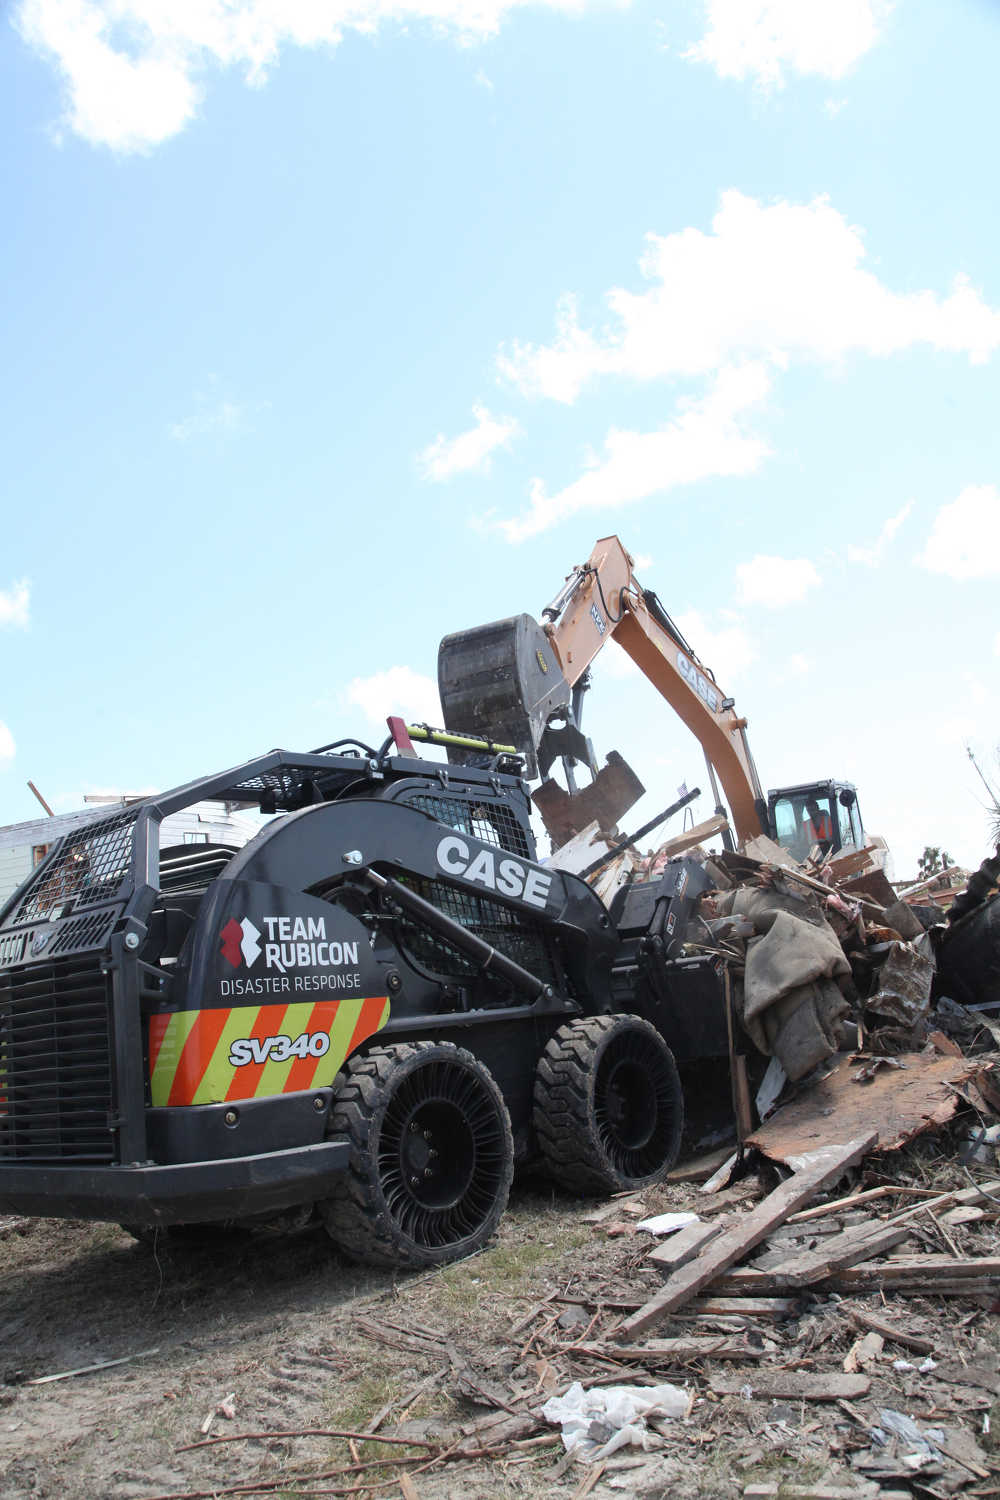 Initial heavy equipment operations included debris removal and home demolition near Rockport and Aransas Pass, Texas, where the eye of Hurricane Harvey made landfall in August. (Photo Credit: Case Construction Equipment and Matt Mateiescu, Team Rubicon)